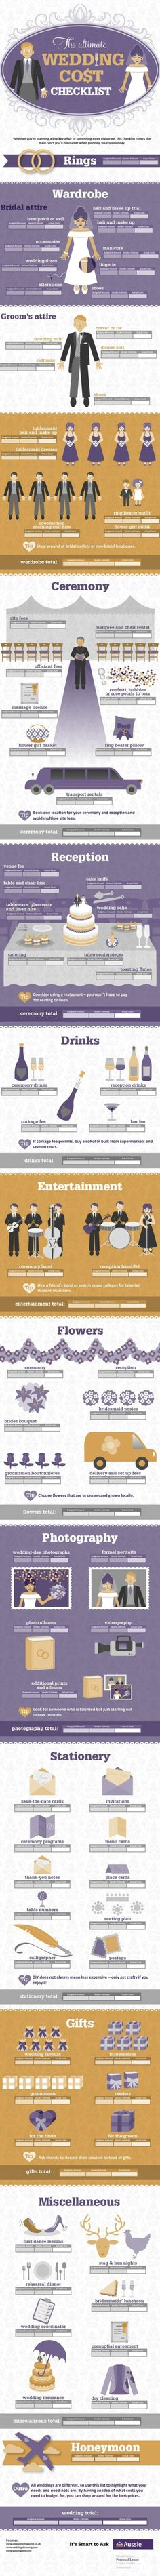 Ultimate Wedding Cost Checklist Infographic The Ultimate Wedding Cost Checklist Infographic. A really awesome starting place!The Ultimate Wedding Cost Checklist Infographic. A really awesome starting place! Wedding Costs, Budget Wedding, Wedding Tips, Wedding Blog, Diy Wedding, Wedding Photos, Wedding Details, Wedding Timeline, Wedding Games